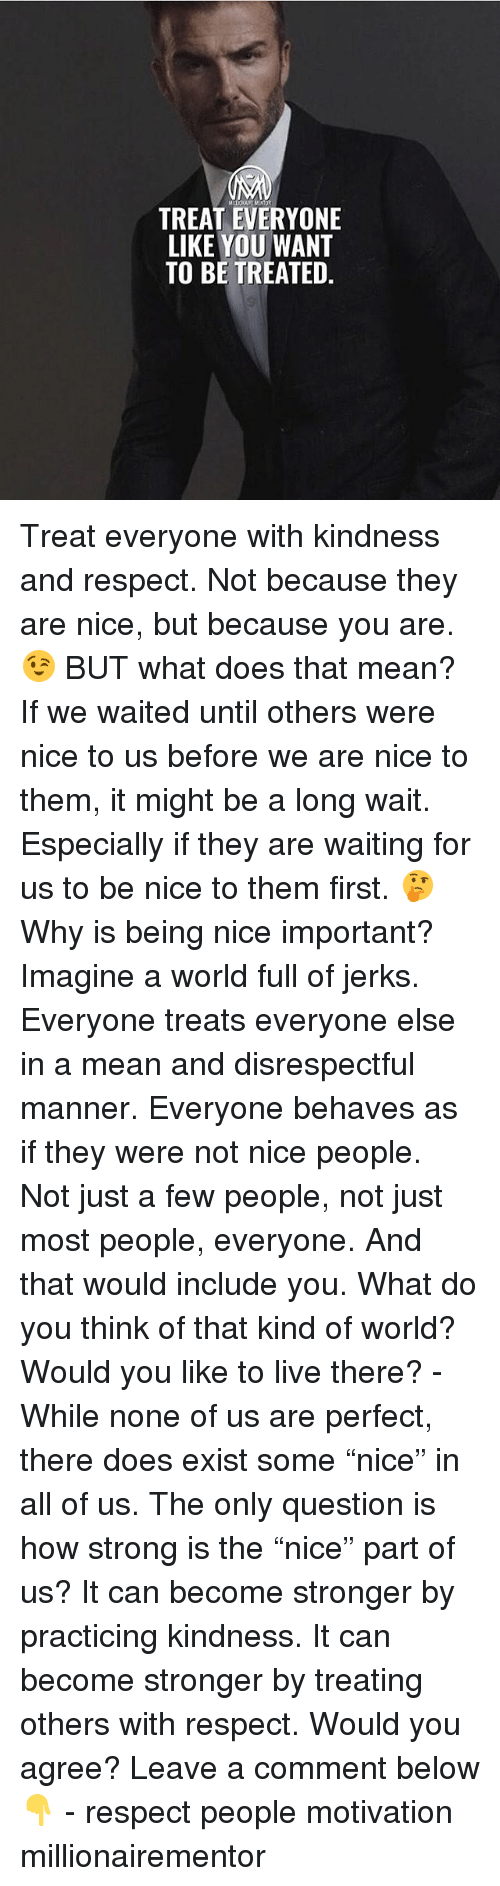 "Memes, Respect, and Live: TREAT EVERYONE  LIKE YOU WANT  TO BE TREATED. Treat everyone with kindness and respect. Not because they are nice, but because you are. 😉 BUT what does that mean? If we waited until others were nice to us before we are nice to them, it might be a long wait. Especially if they are waiting for us to be nice to them first. 🤔 Why is being nice important? Imagine a world full of jerks. Everyone treats everyone else in a mean and disrespectful manner. Everyone behaves as if they were not nice people. Not just a few people, not just most people, everyone. And that would include you. What do you think of that kind of world? Would you like to live there? - While none of us are perfect, there does exist some ""nice"" in all of us. The only question is how strong is the ""nice"" part of us? It can become stronger by practicing kindness. It can become stronger by treating others with respect. Would you agree? Leave a comment below 👇 - respect people motivation millionairementor"